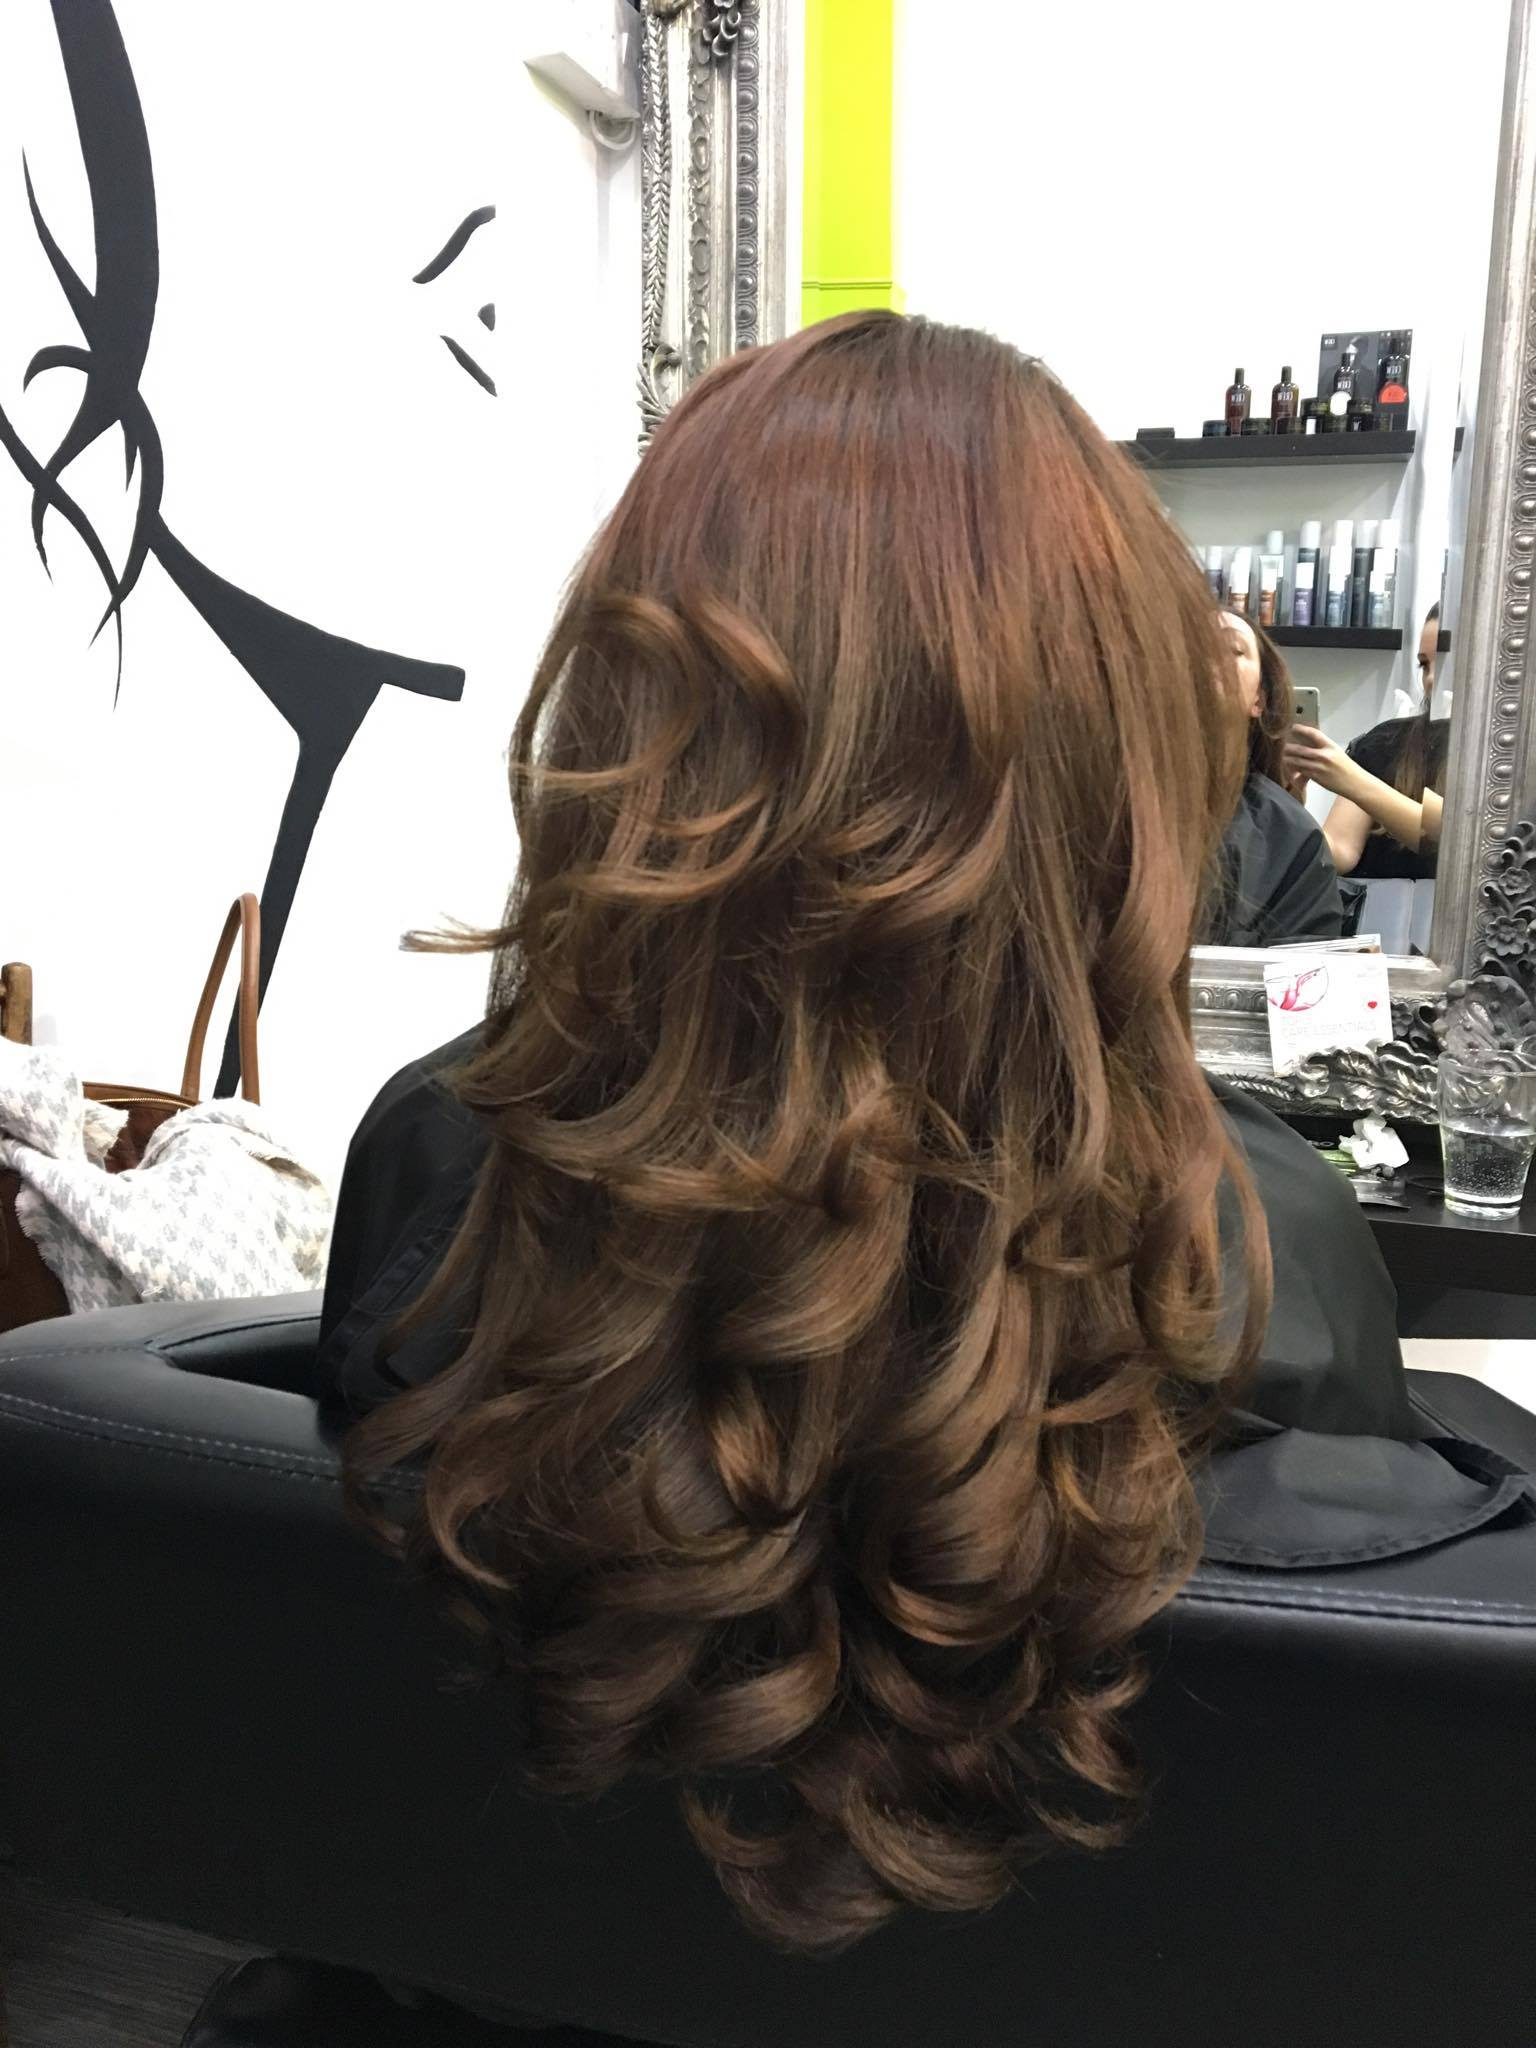 hair colouring ideas Parisian brunette